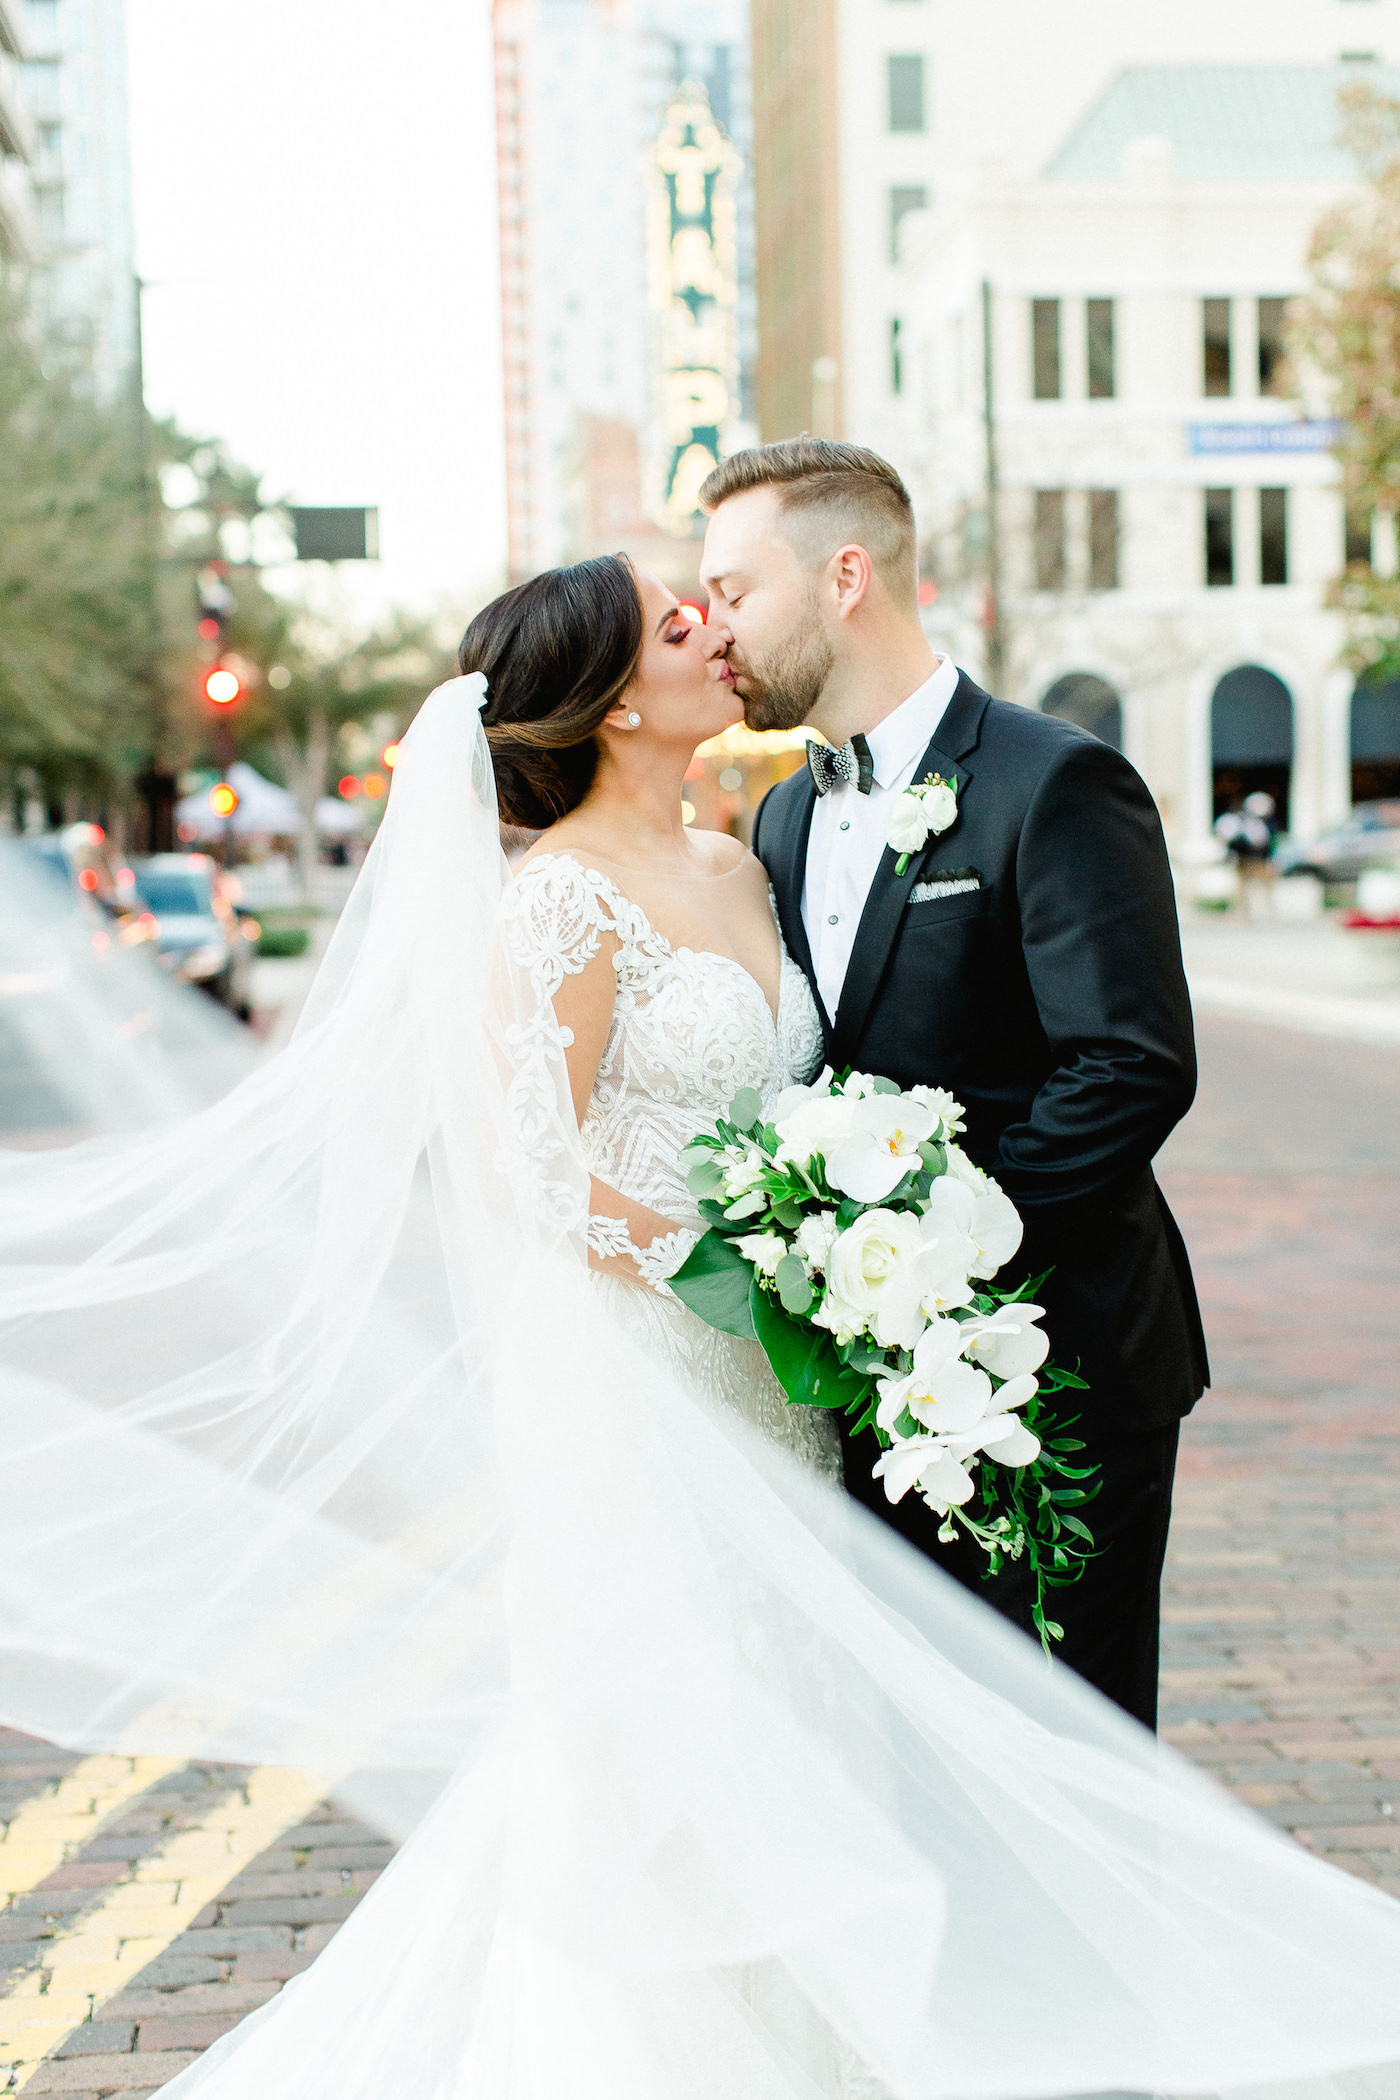 Classic Tampa Bay Bride and Groom Wedding Portrait in downtown Tampa, Florida Bride in Illusion Lace Sleeve Fit and Flare Wedding Dress, Holding Wedding Floral Bouquet with White Orchids, Ivory Roses and Greenery, Veil Blowing in Wind